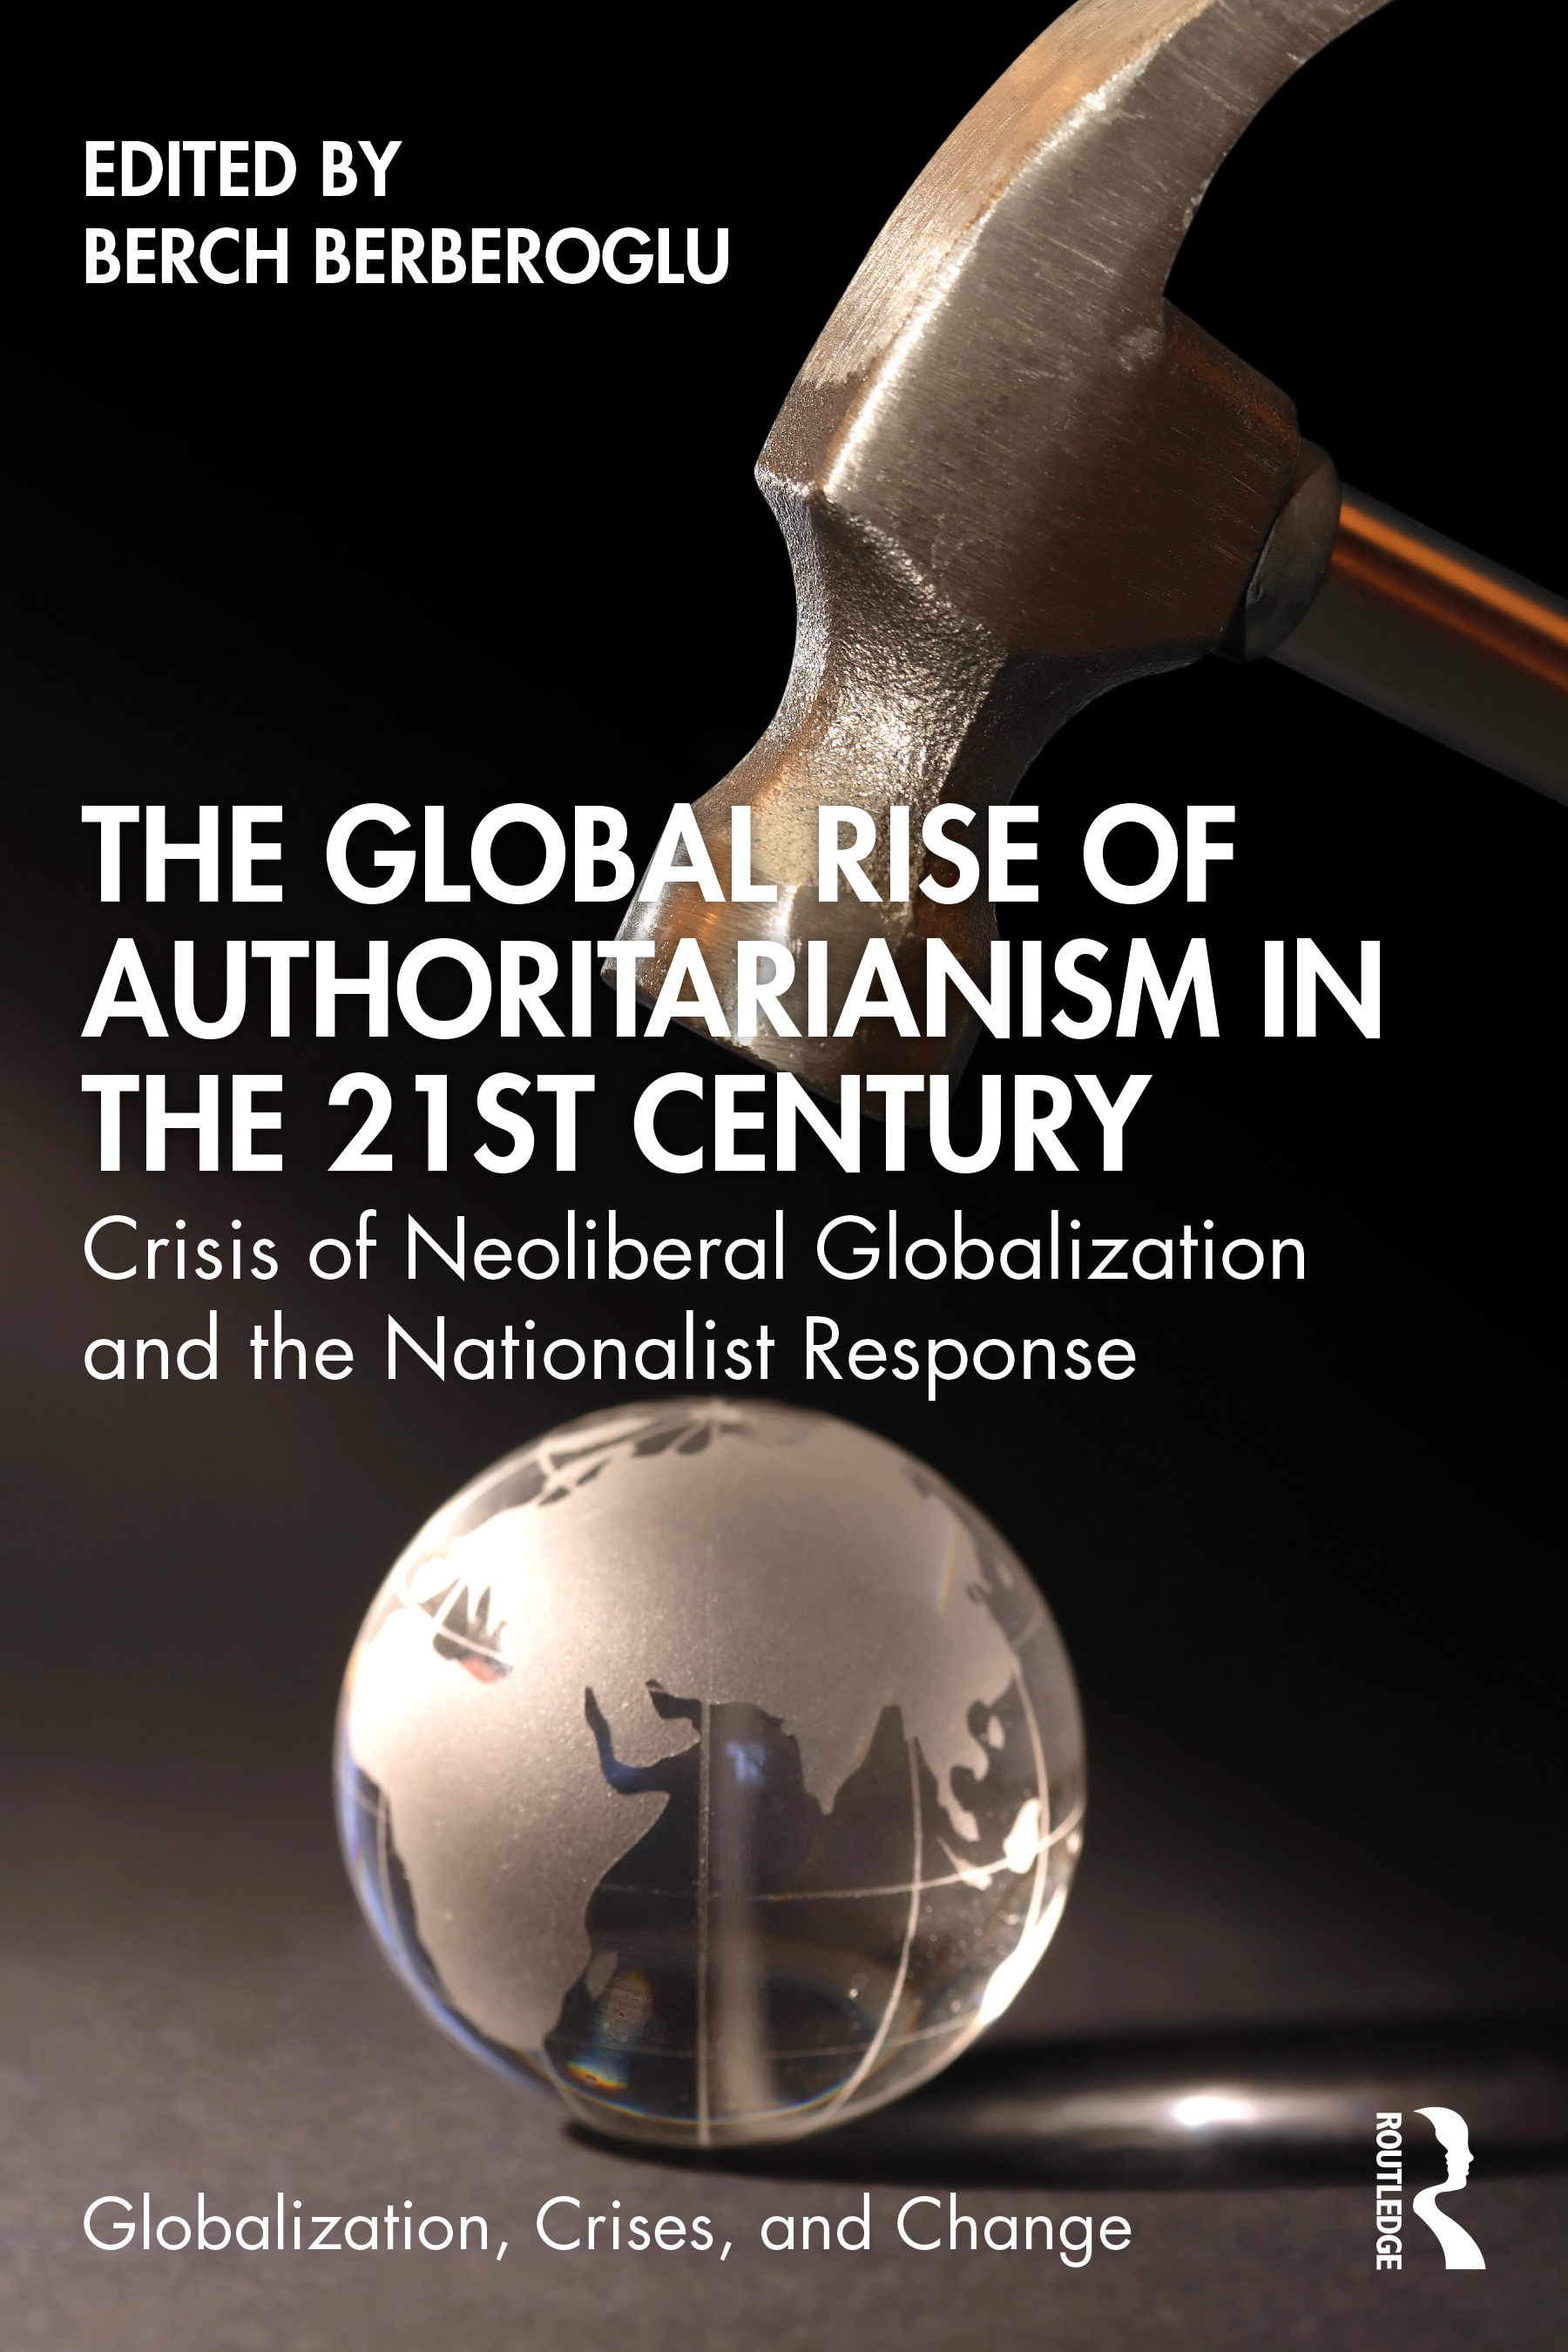 The Global Rise of Authoritarianism in the 21st Century